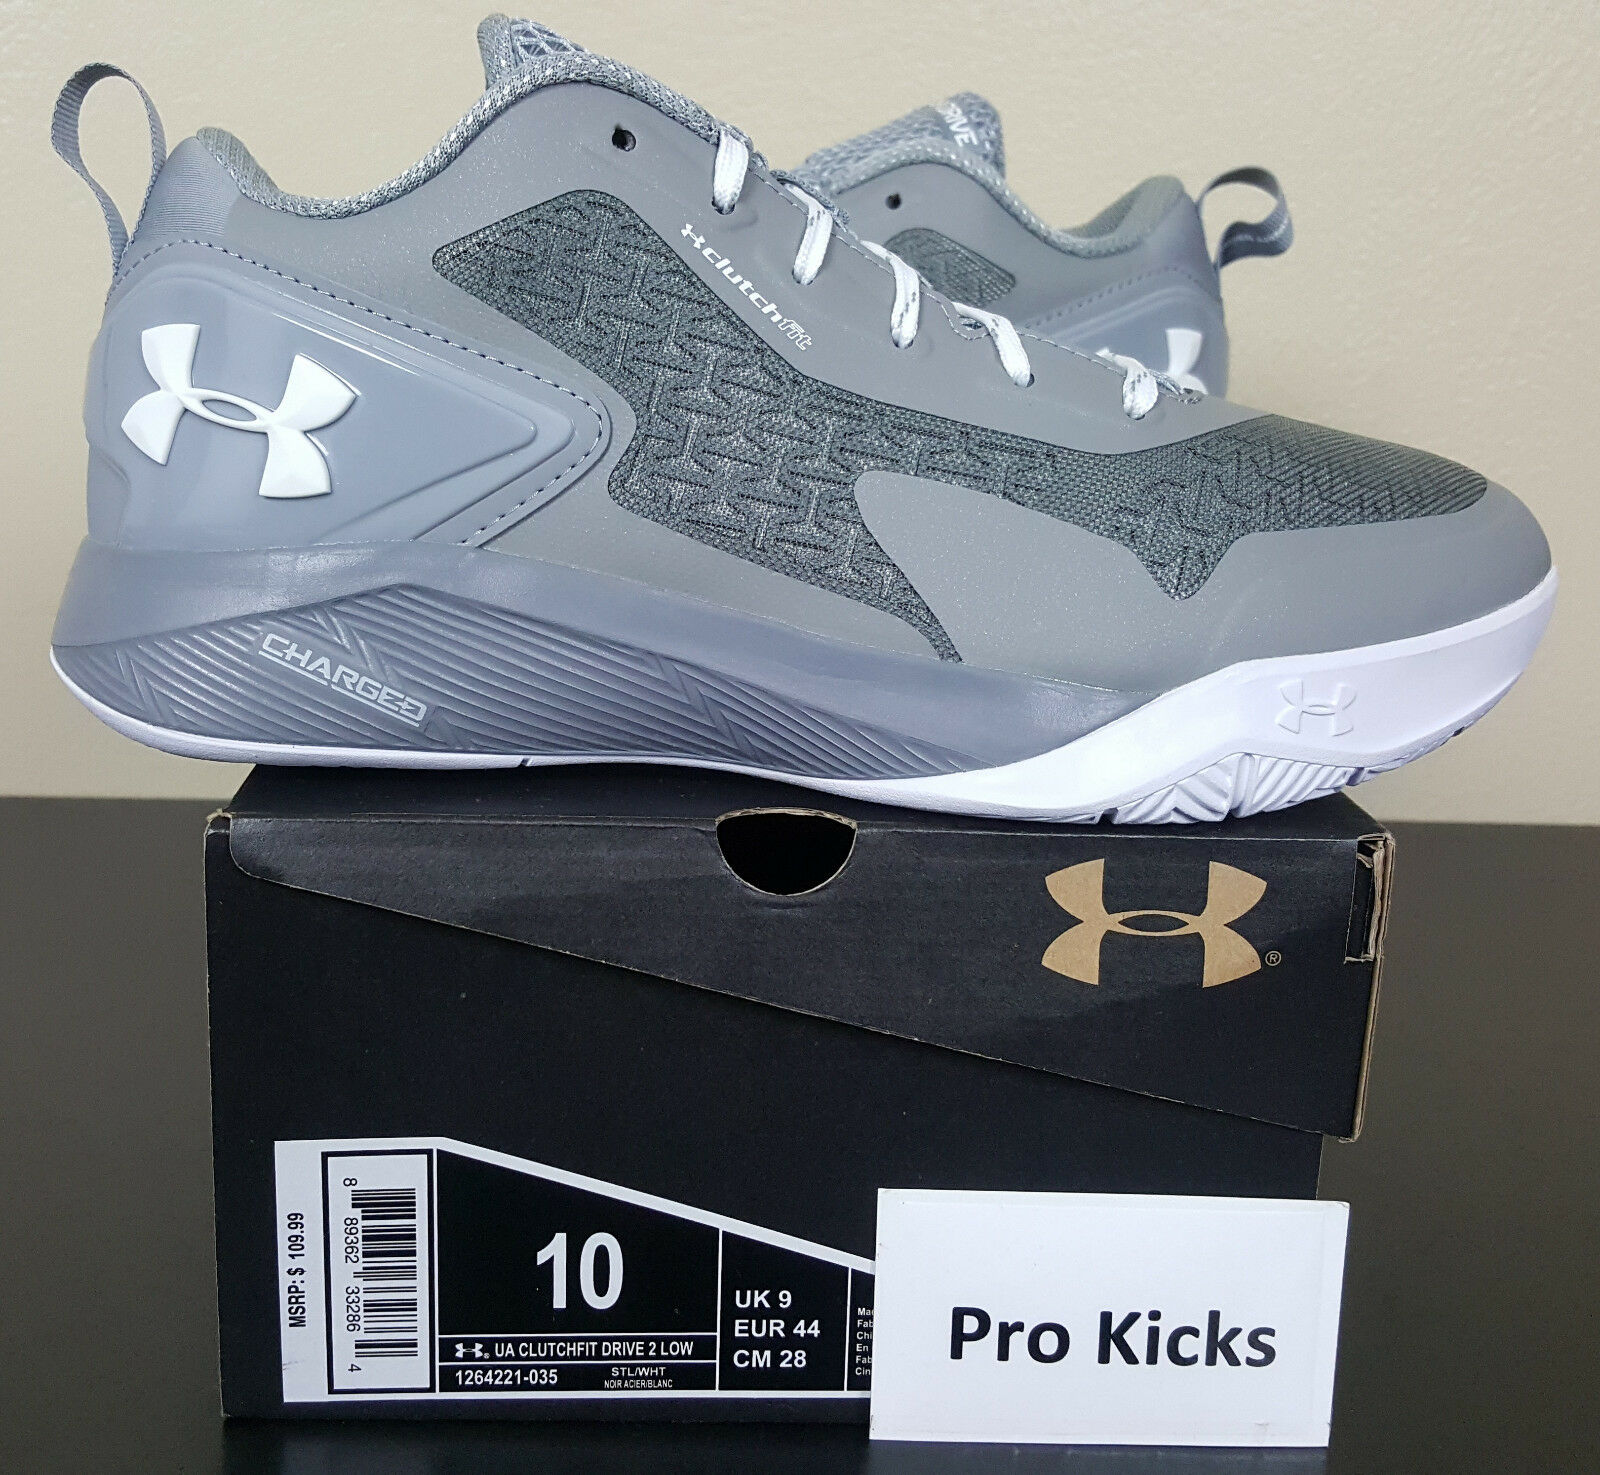 UNDER ARMOUR CLUTCHFIT BASKETBALL DRIVE 2 LOW BASKETBALL CLUTCHFIT Scarpe GREY 1264221-035 (SIZE 10) 99179a